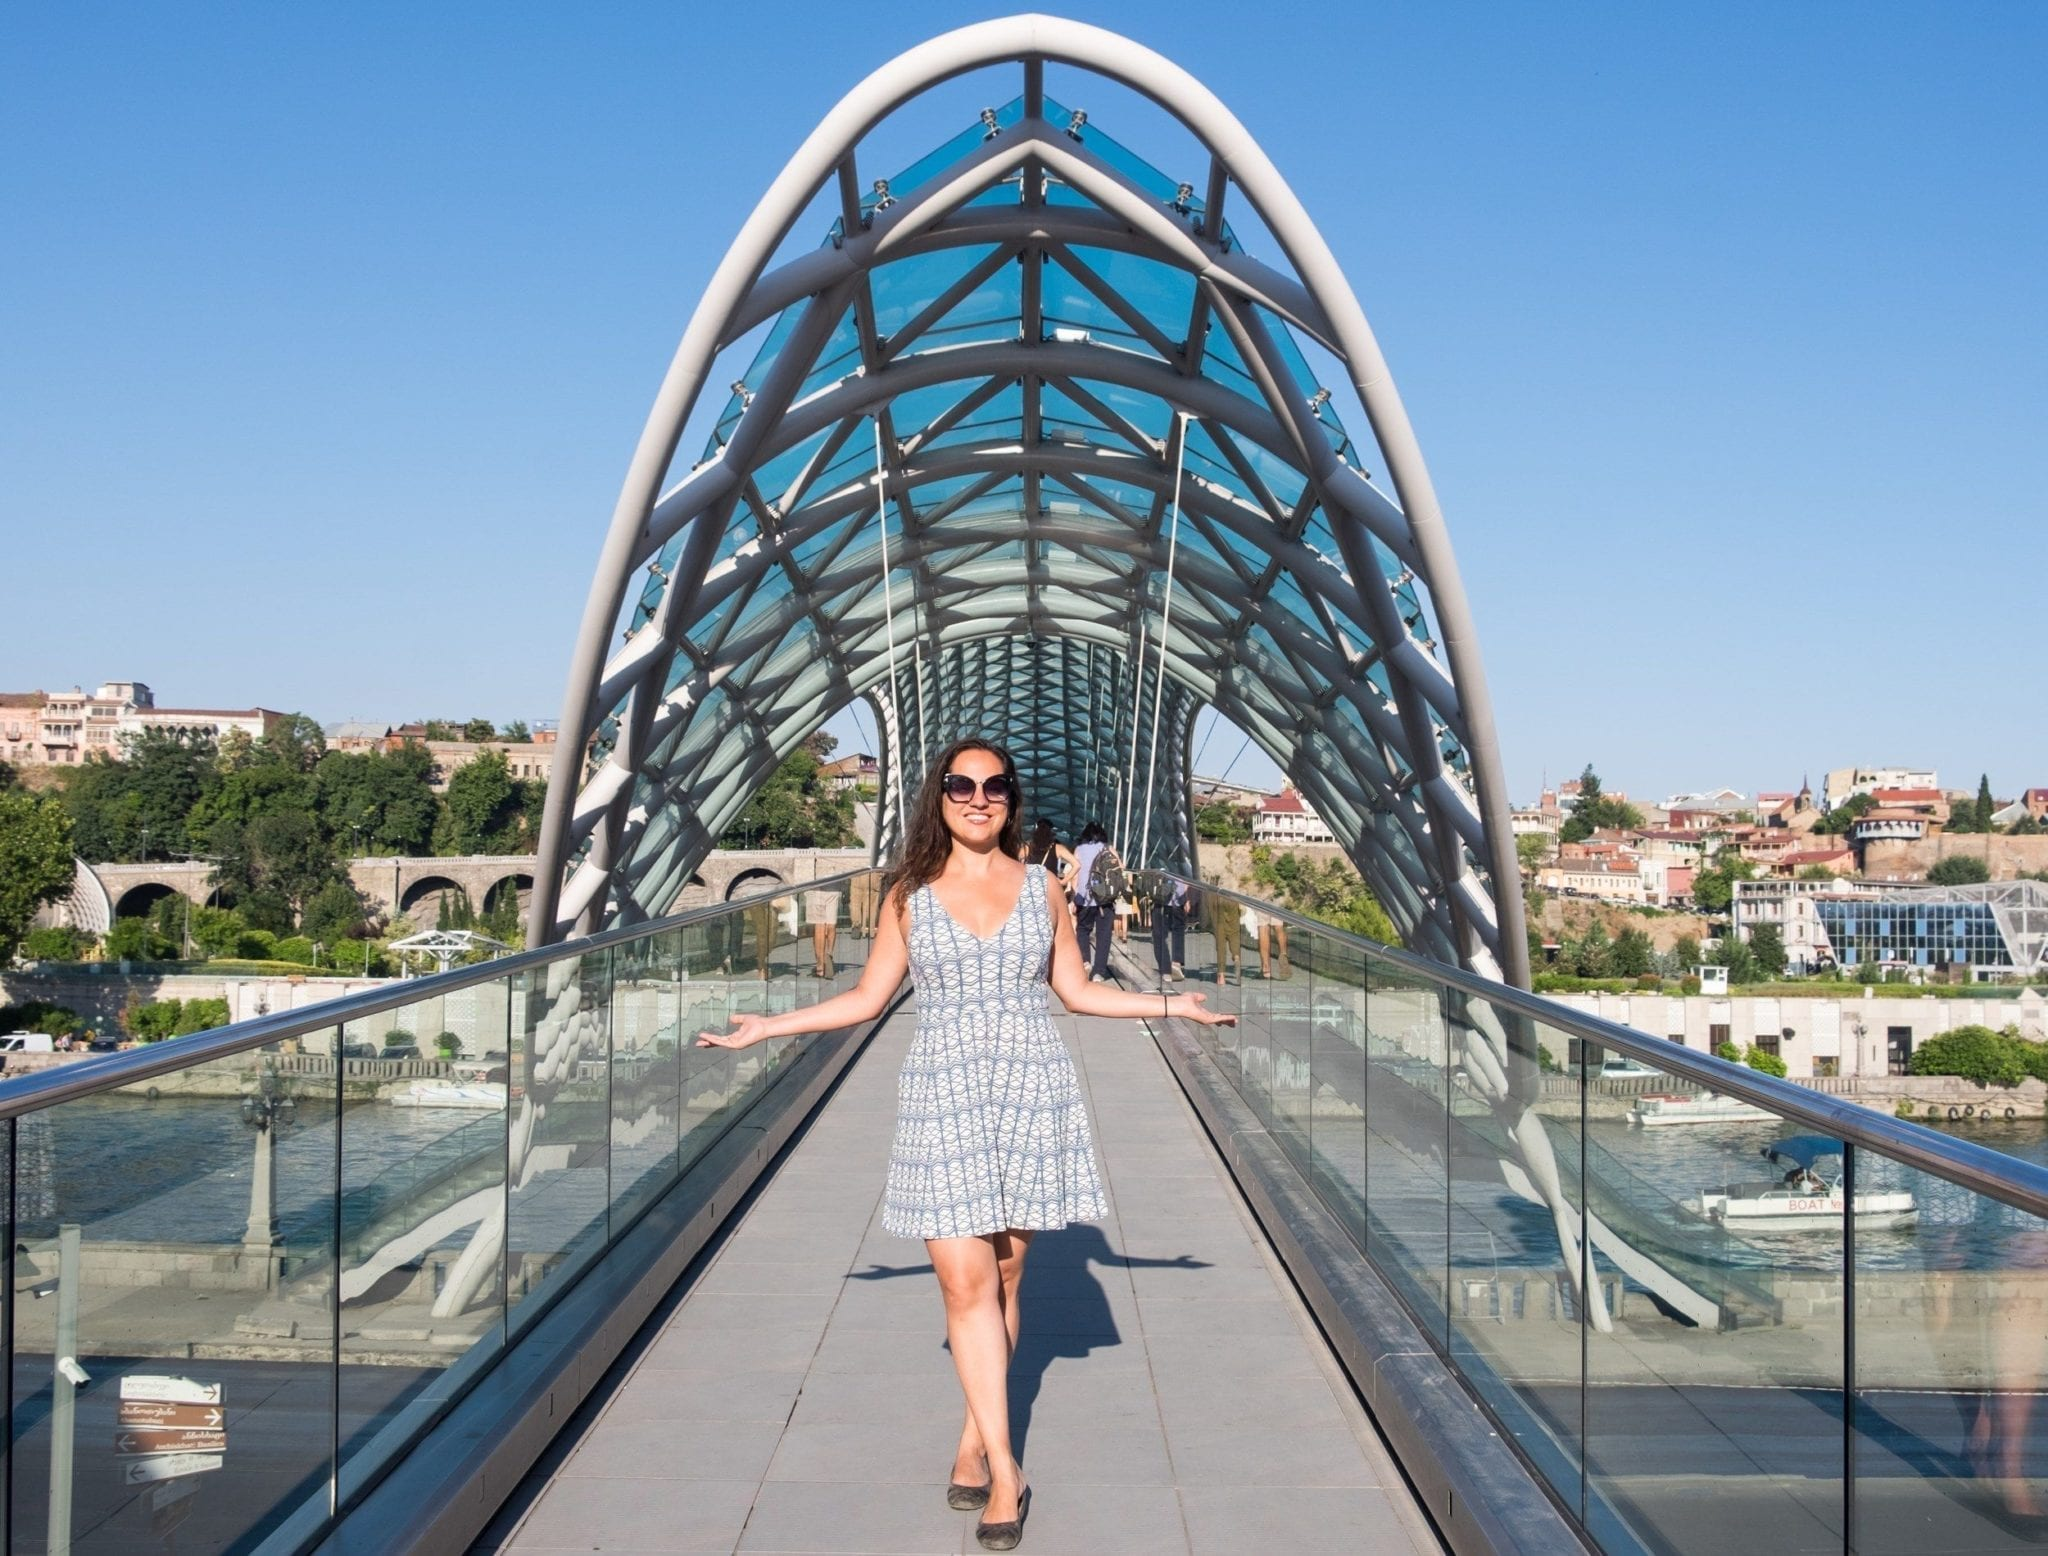 Kate stands in front of the Peace Bridge in Tbilisi, Georgia, which is modern and a grid-like oblong shape interspersed with green-blue panels of glass. Kate wears a white dress with a white and green and blue geometric pattern that looks similar to the bridge.